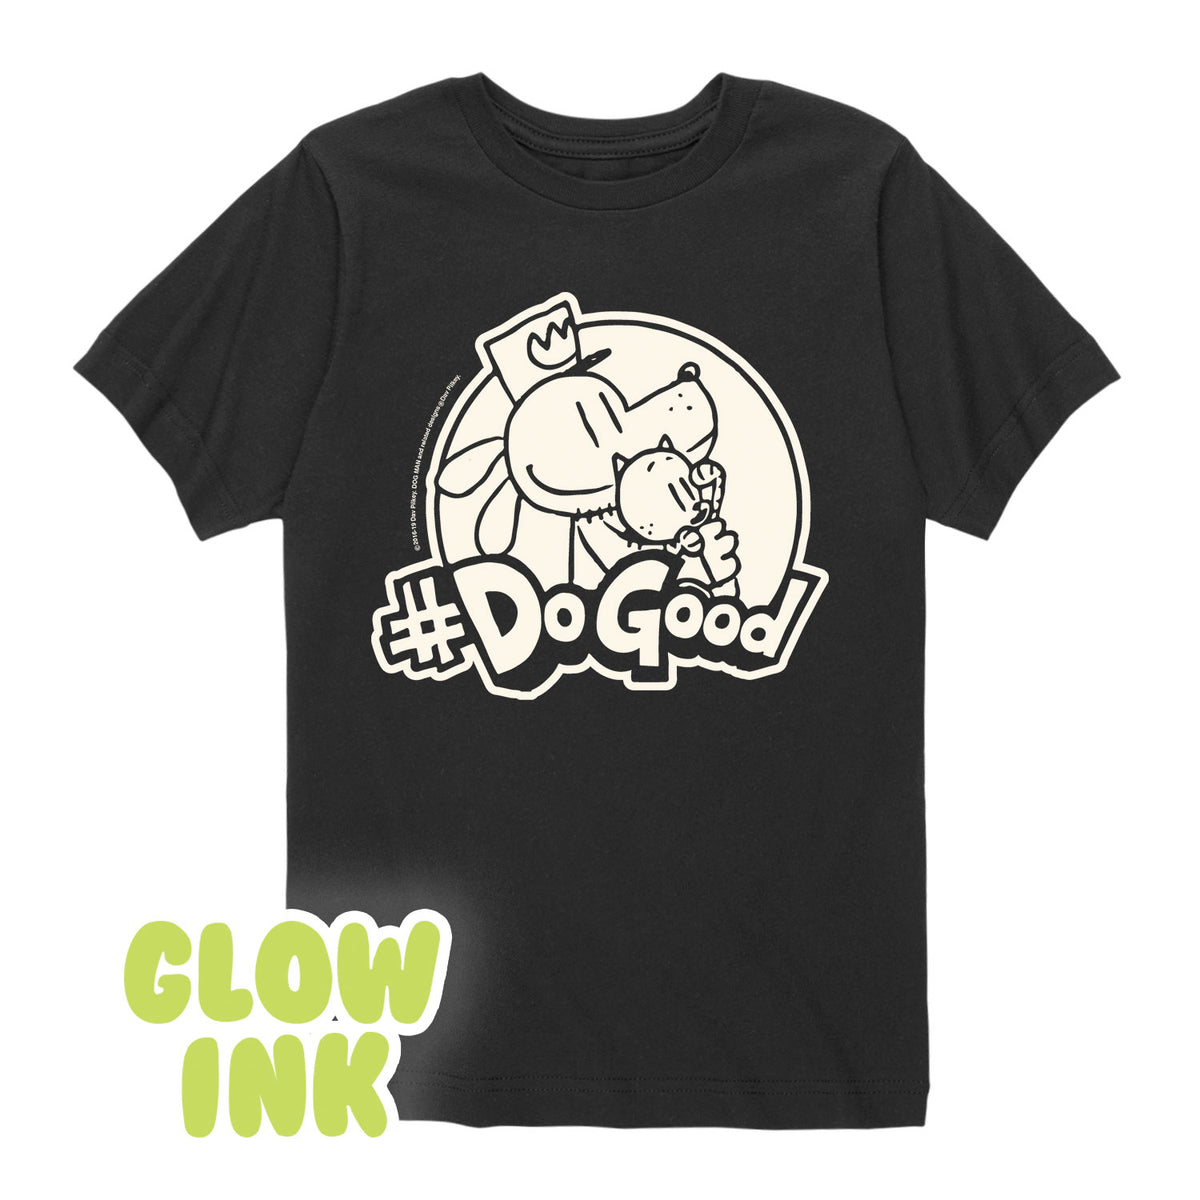 Dogman Do Good_Glow - Youth & Toddler Short Sleeve T-Shirt